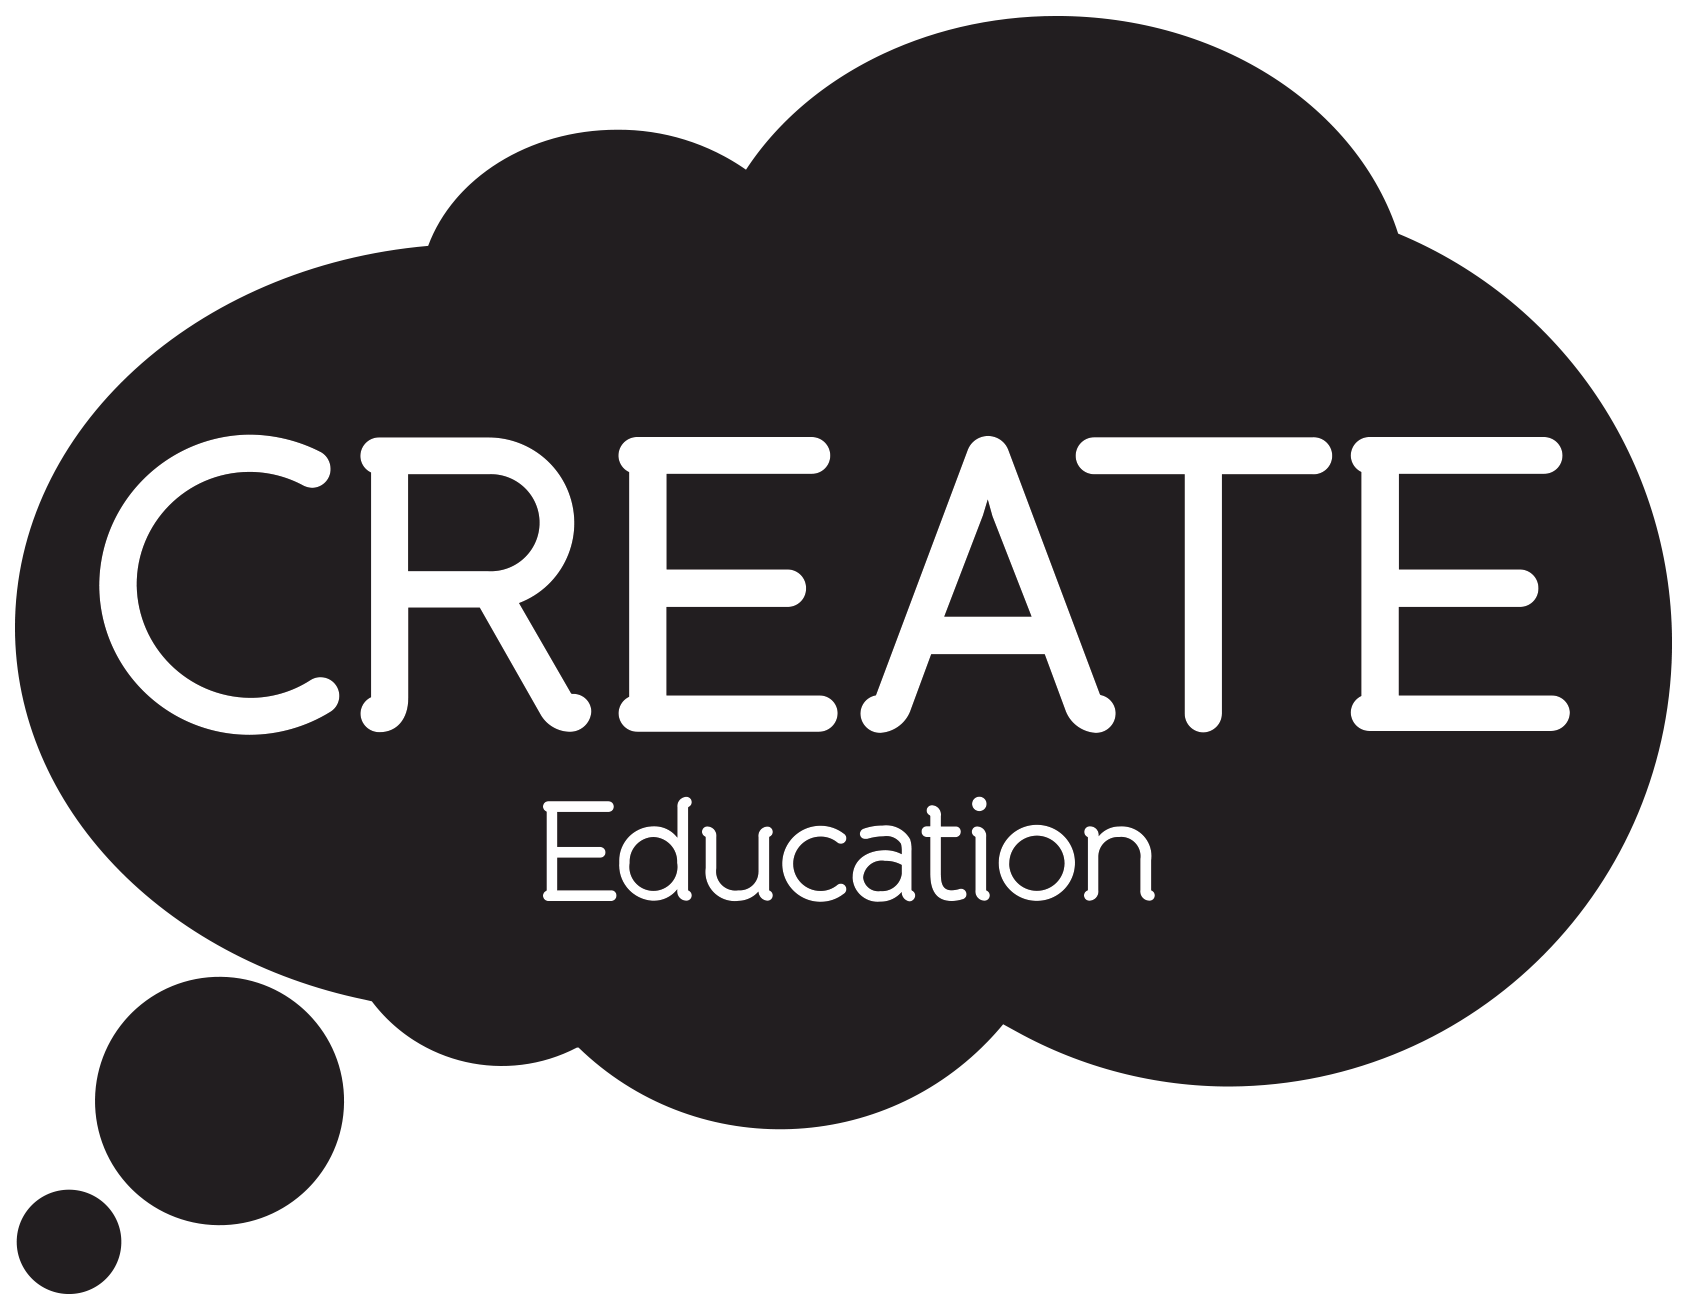 CREATE Education Marketplace